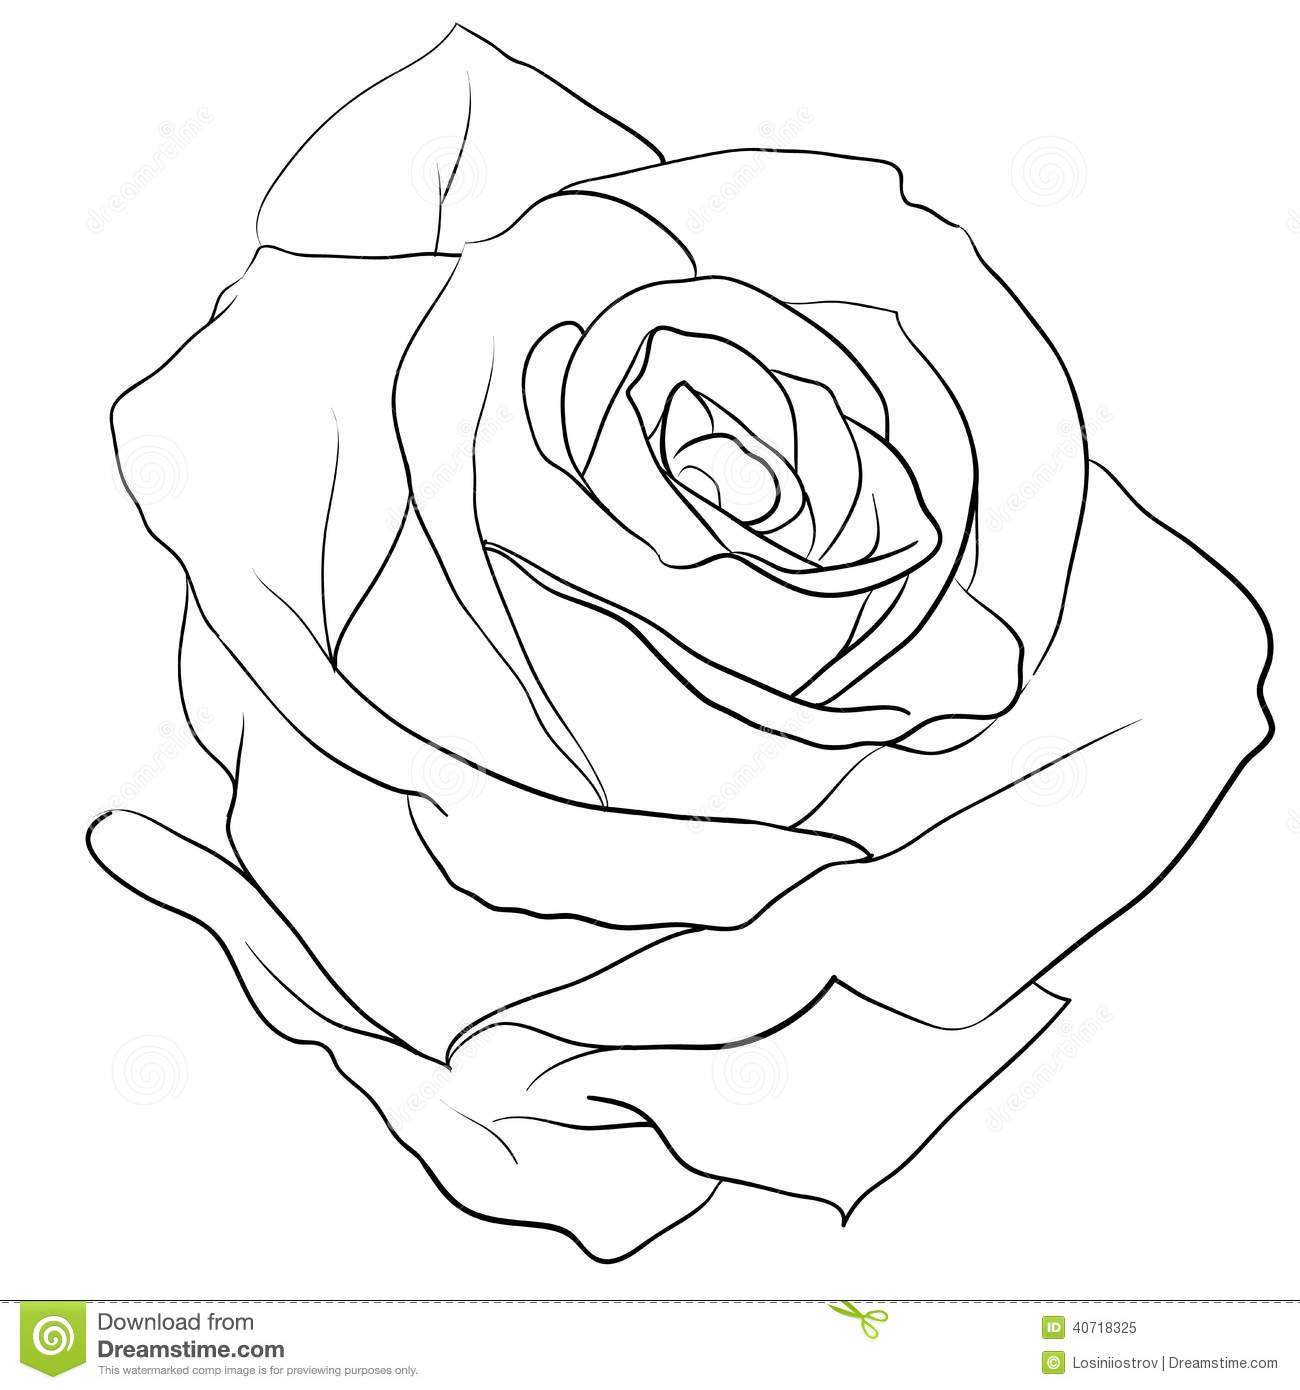 knumathise: Realistic Rose Drawing Outline Images